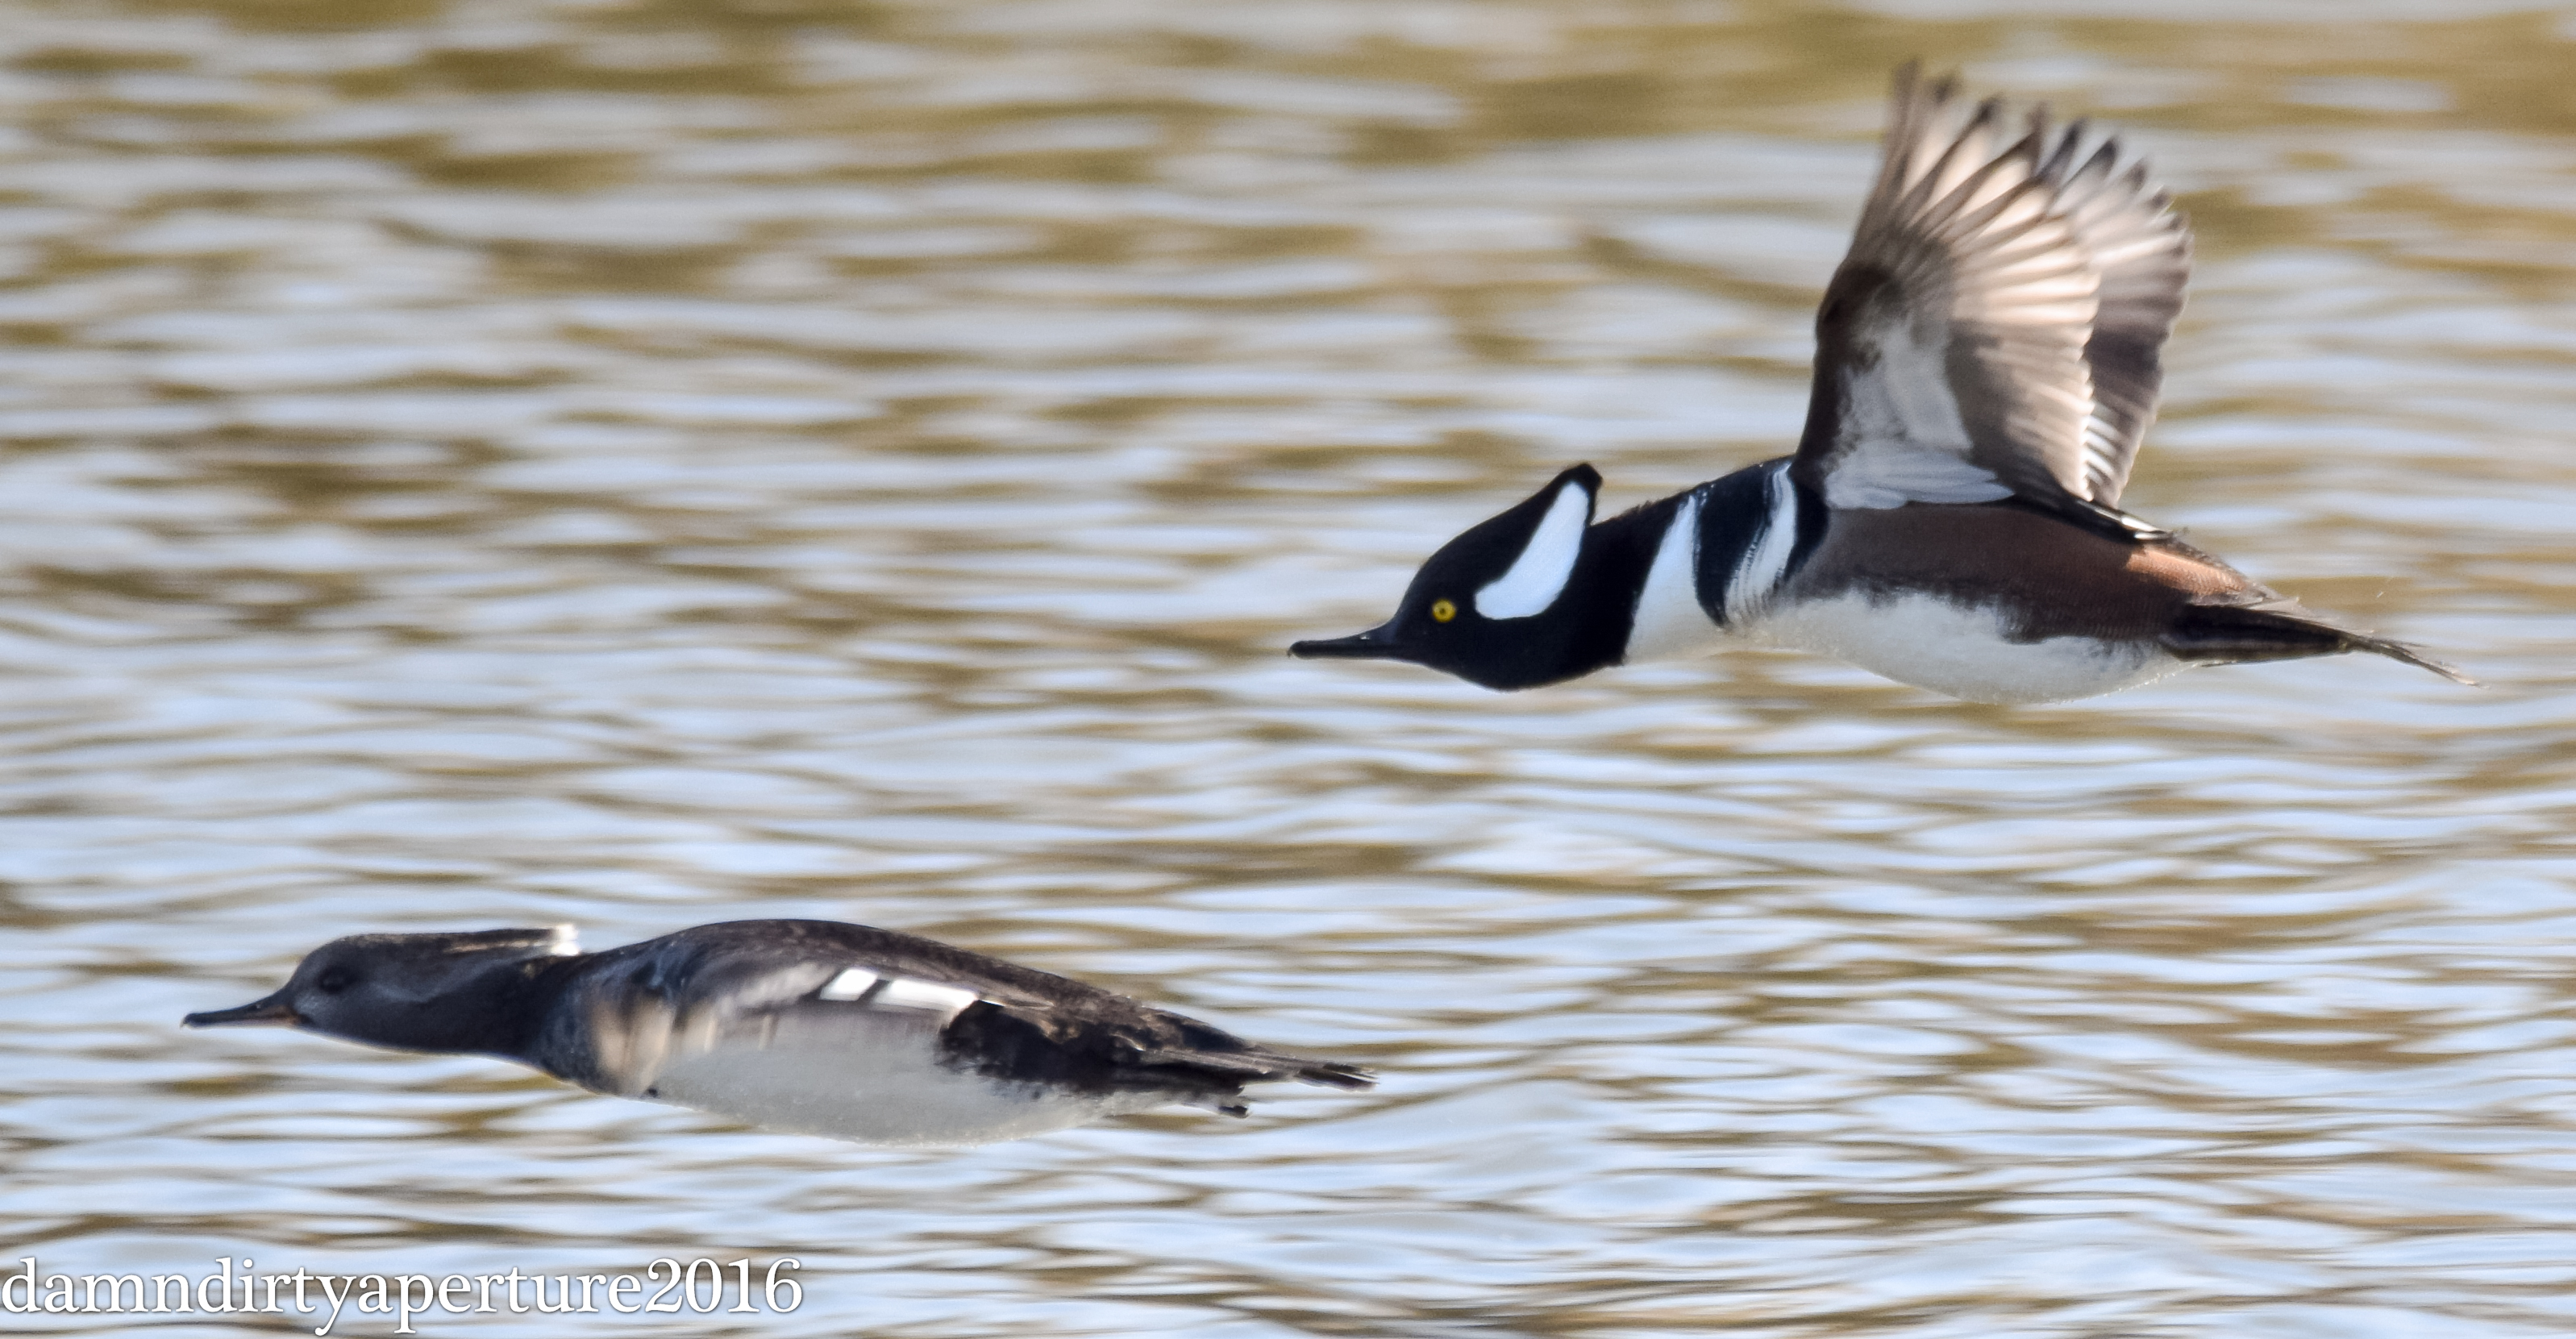 hooded-mergansers-ceragno-11-16